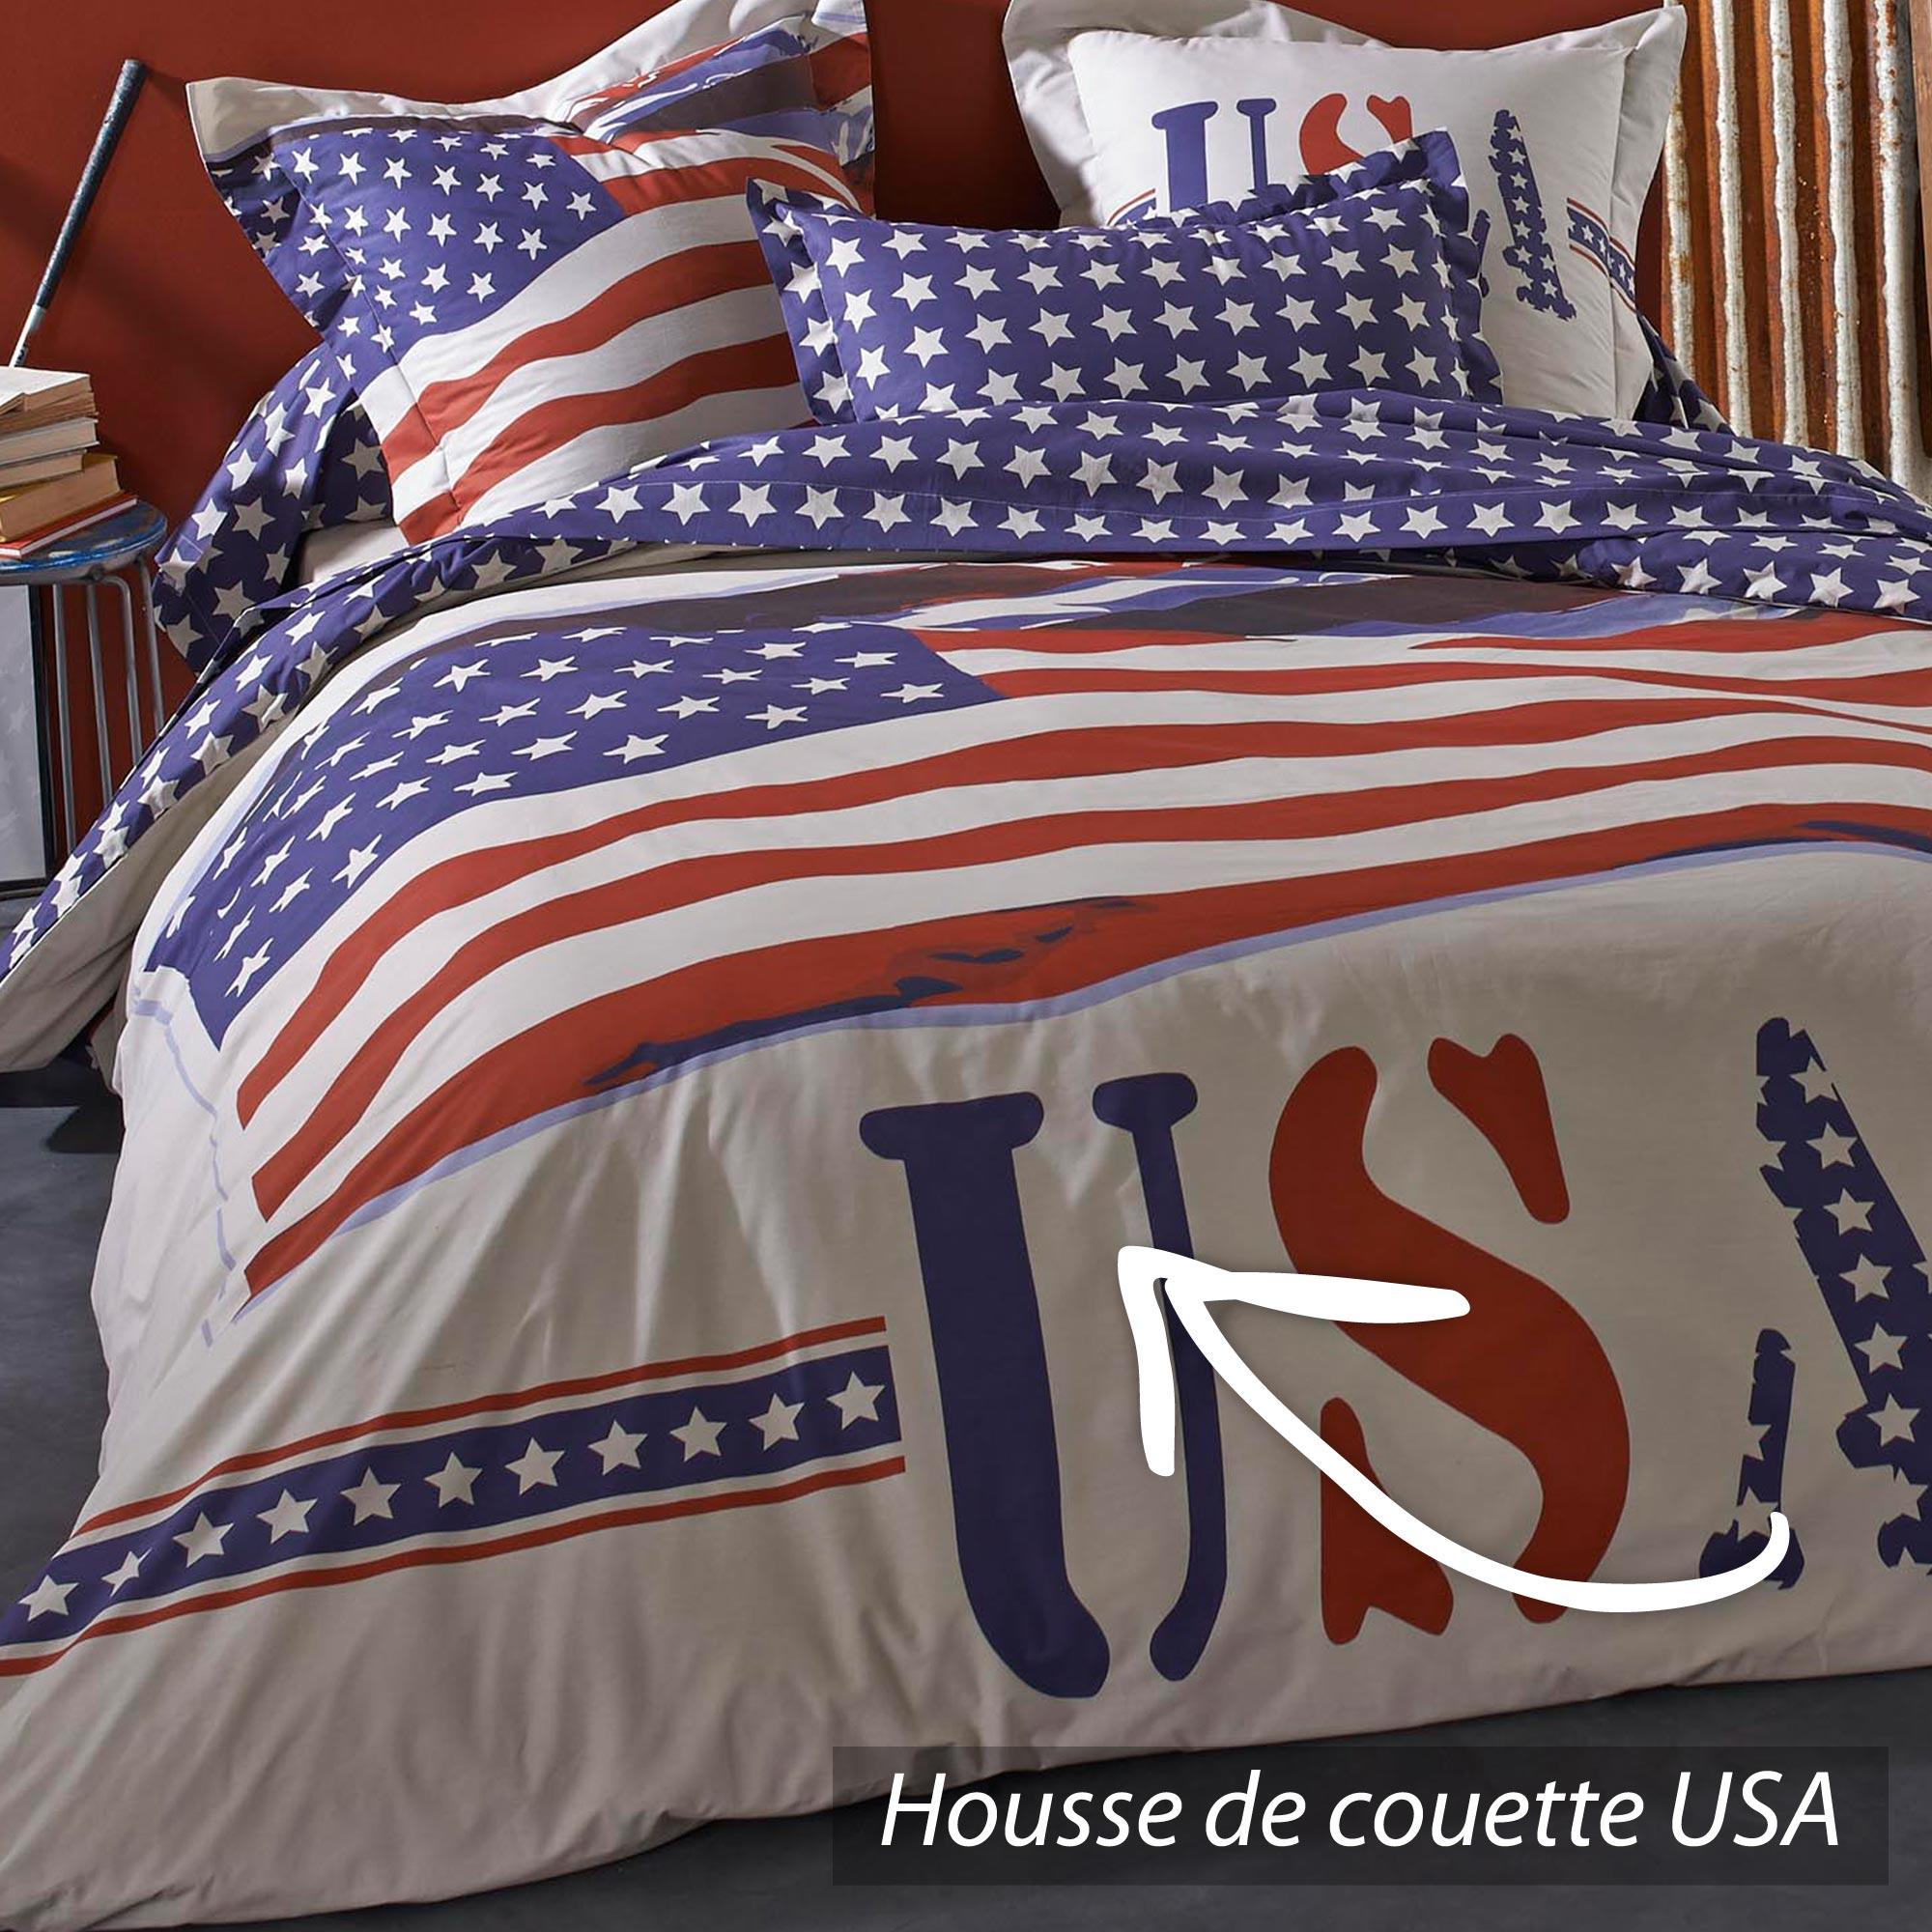 housse de couette 140x200 cm usa linnea vente de linge de maison. Black Bedroom Furniture Sets. Home Design Ideas